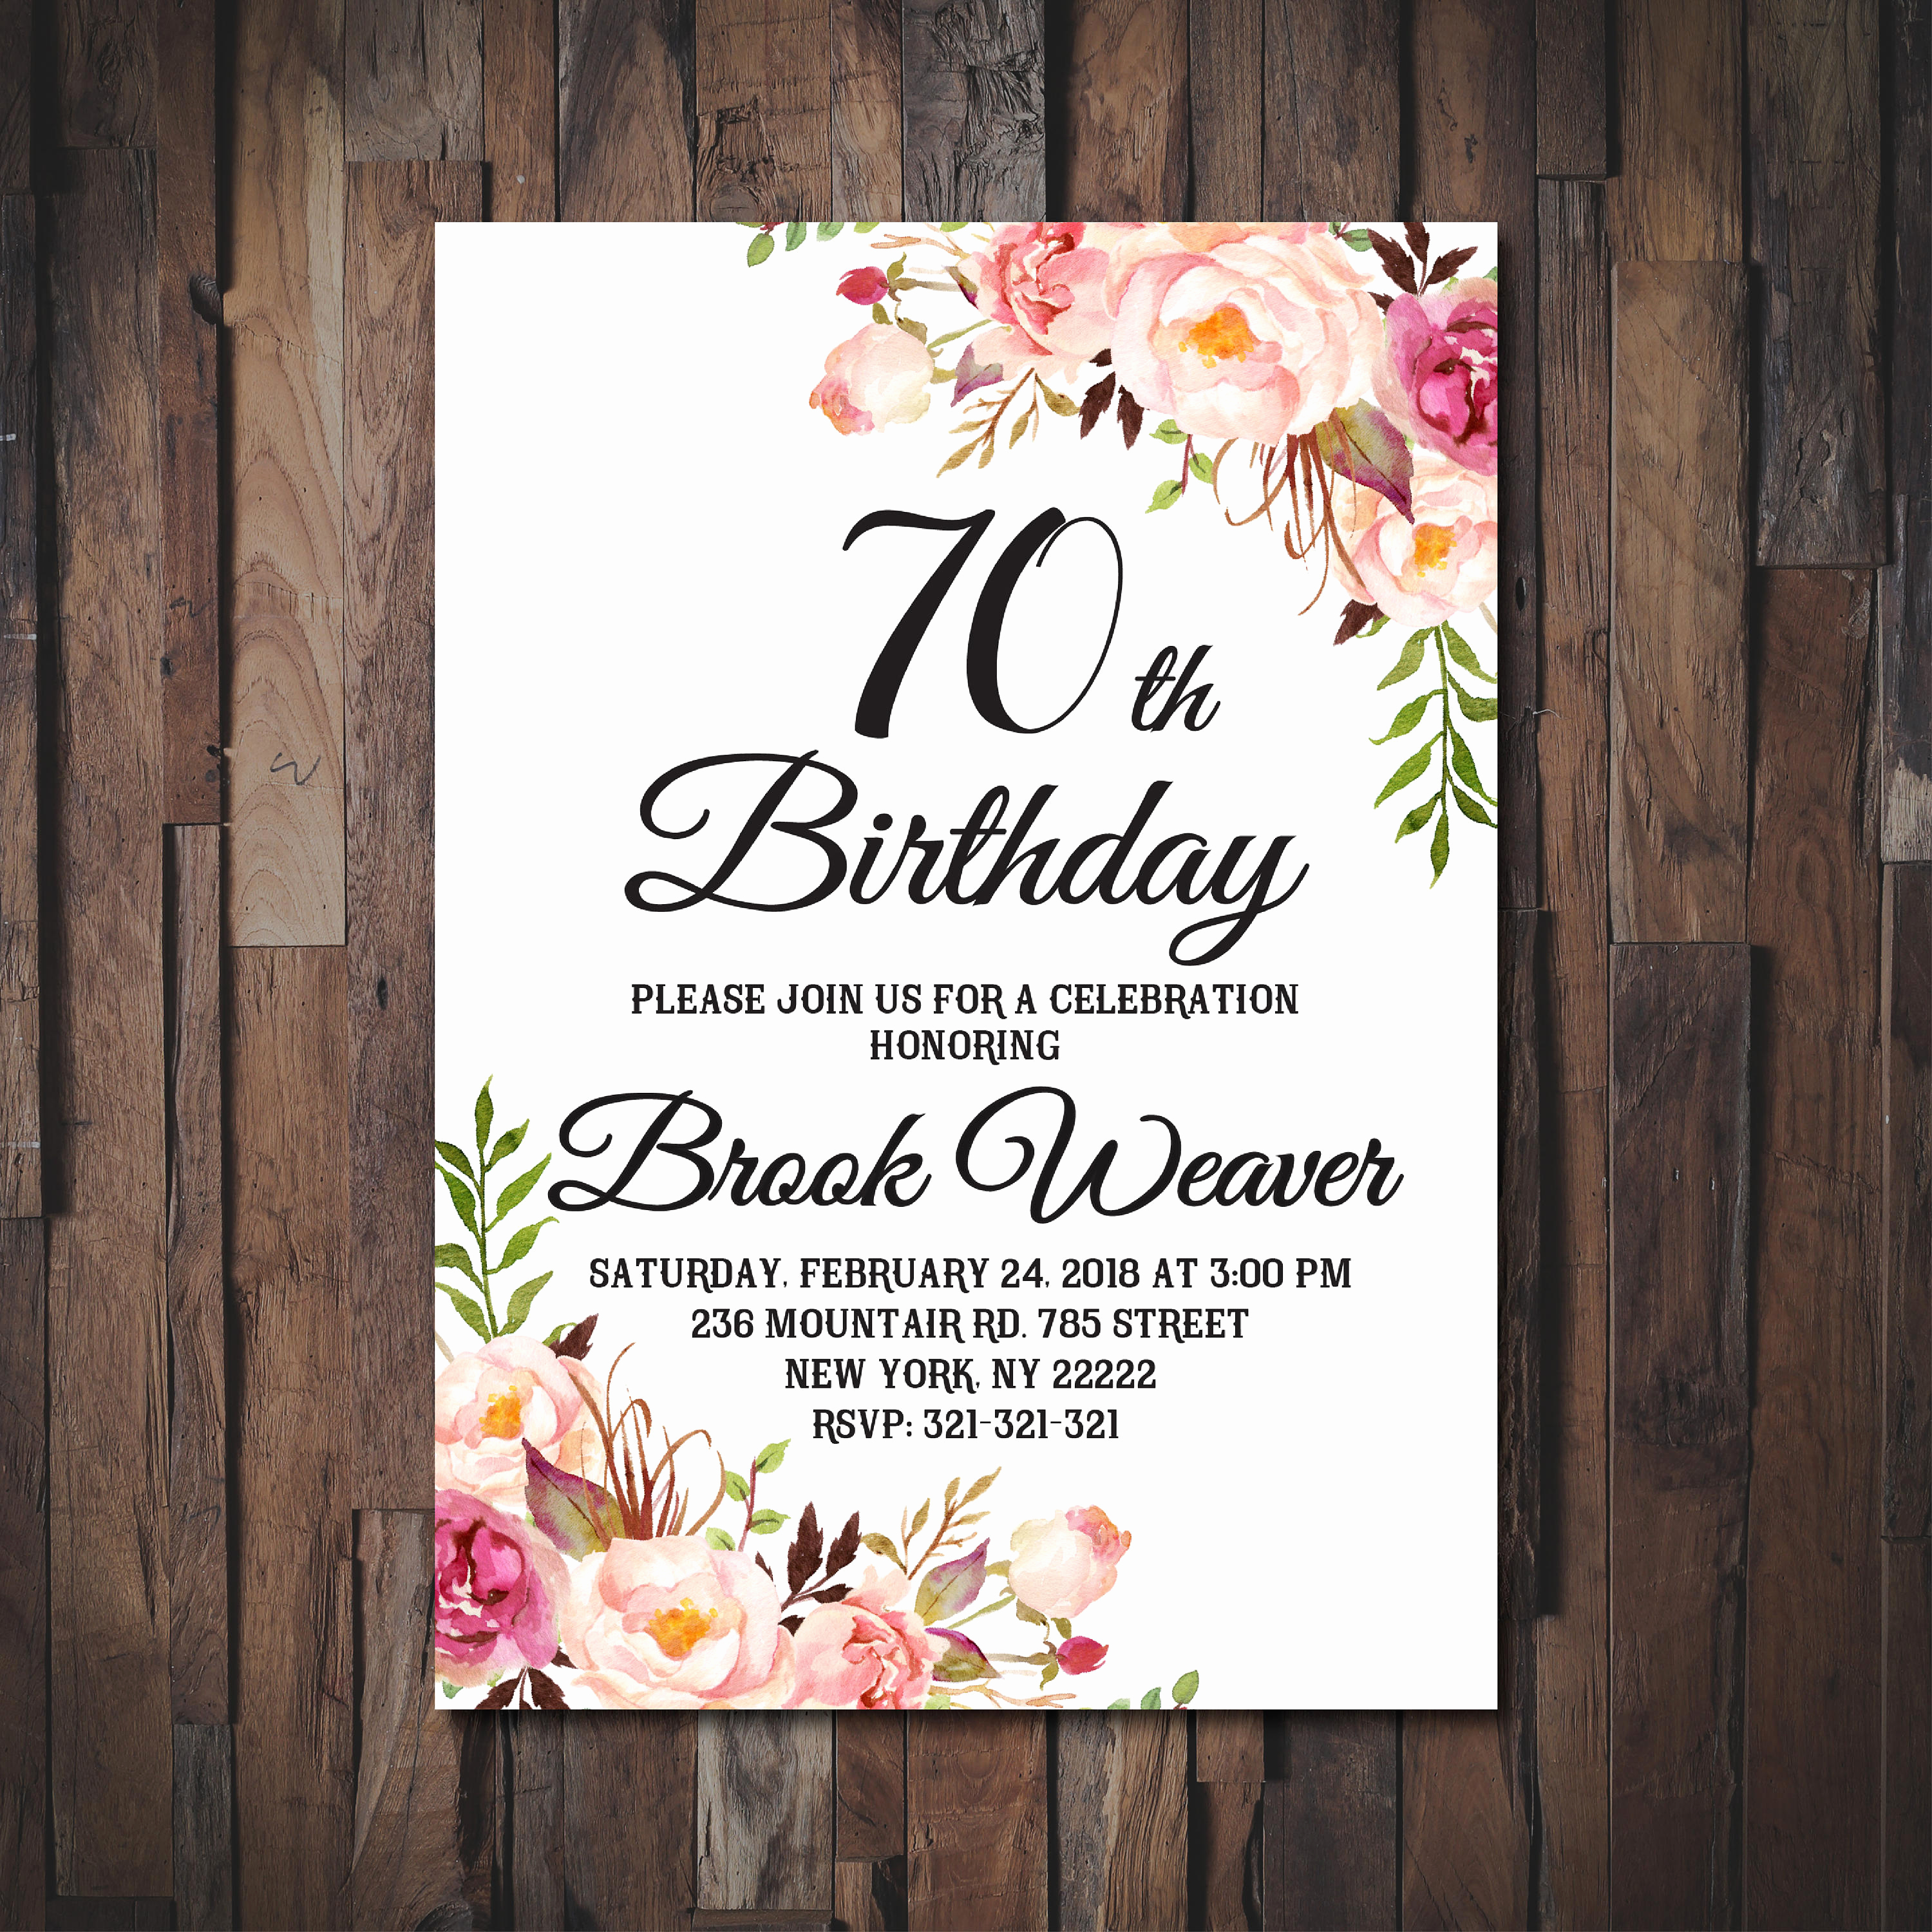 70th Birthday Invitation Wording Inspirational 70th Birthday Invitation for Women 70th Birthday